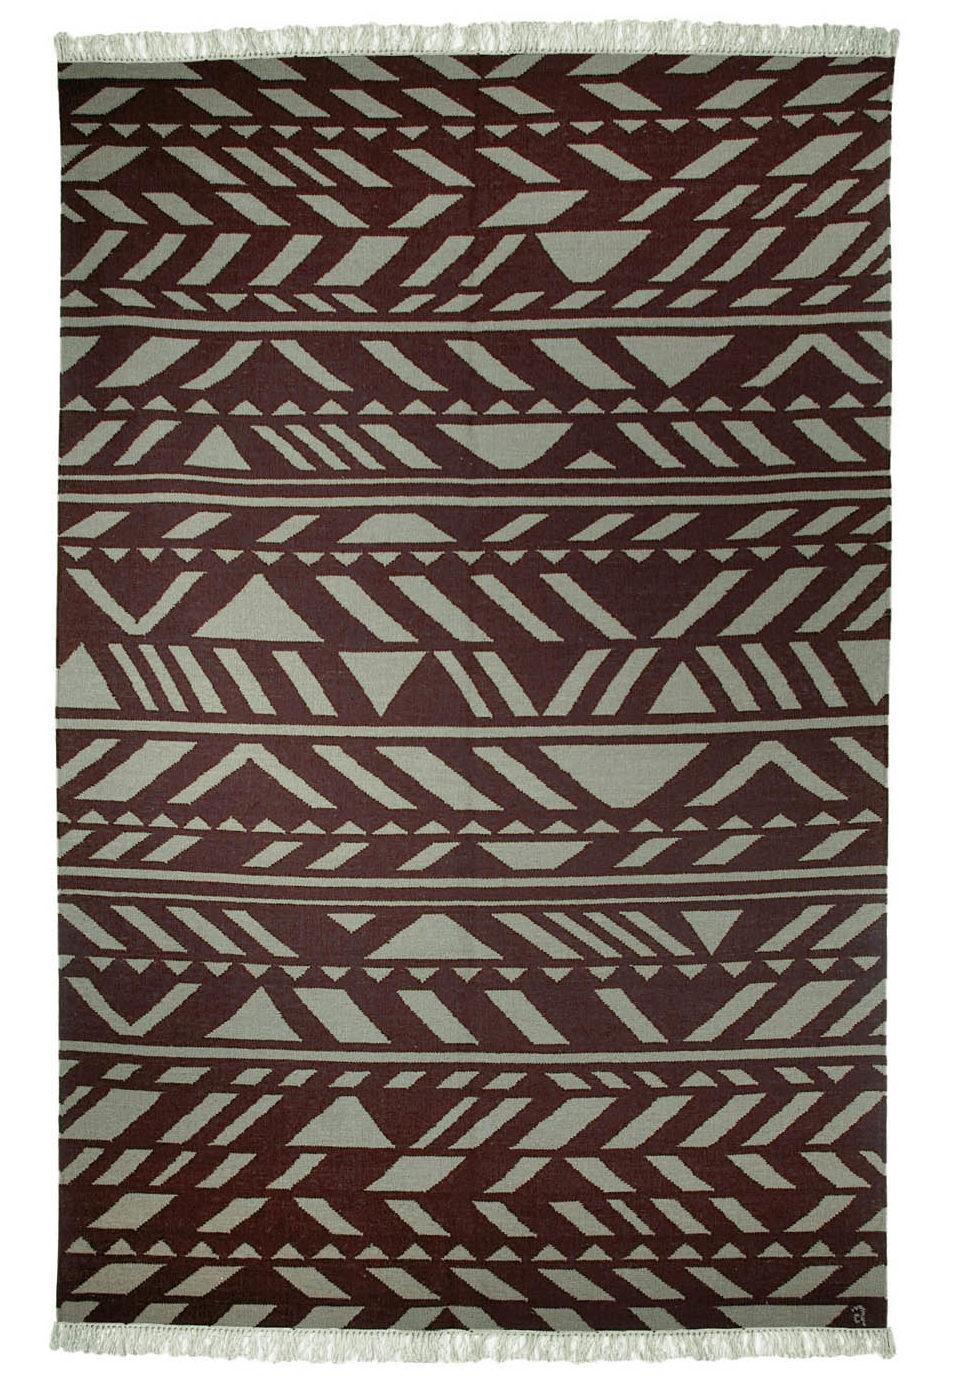 Zag Sterling brown grey handmade rugs modern nordic